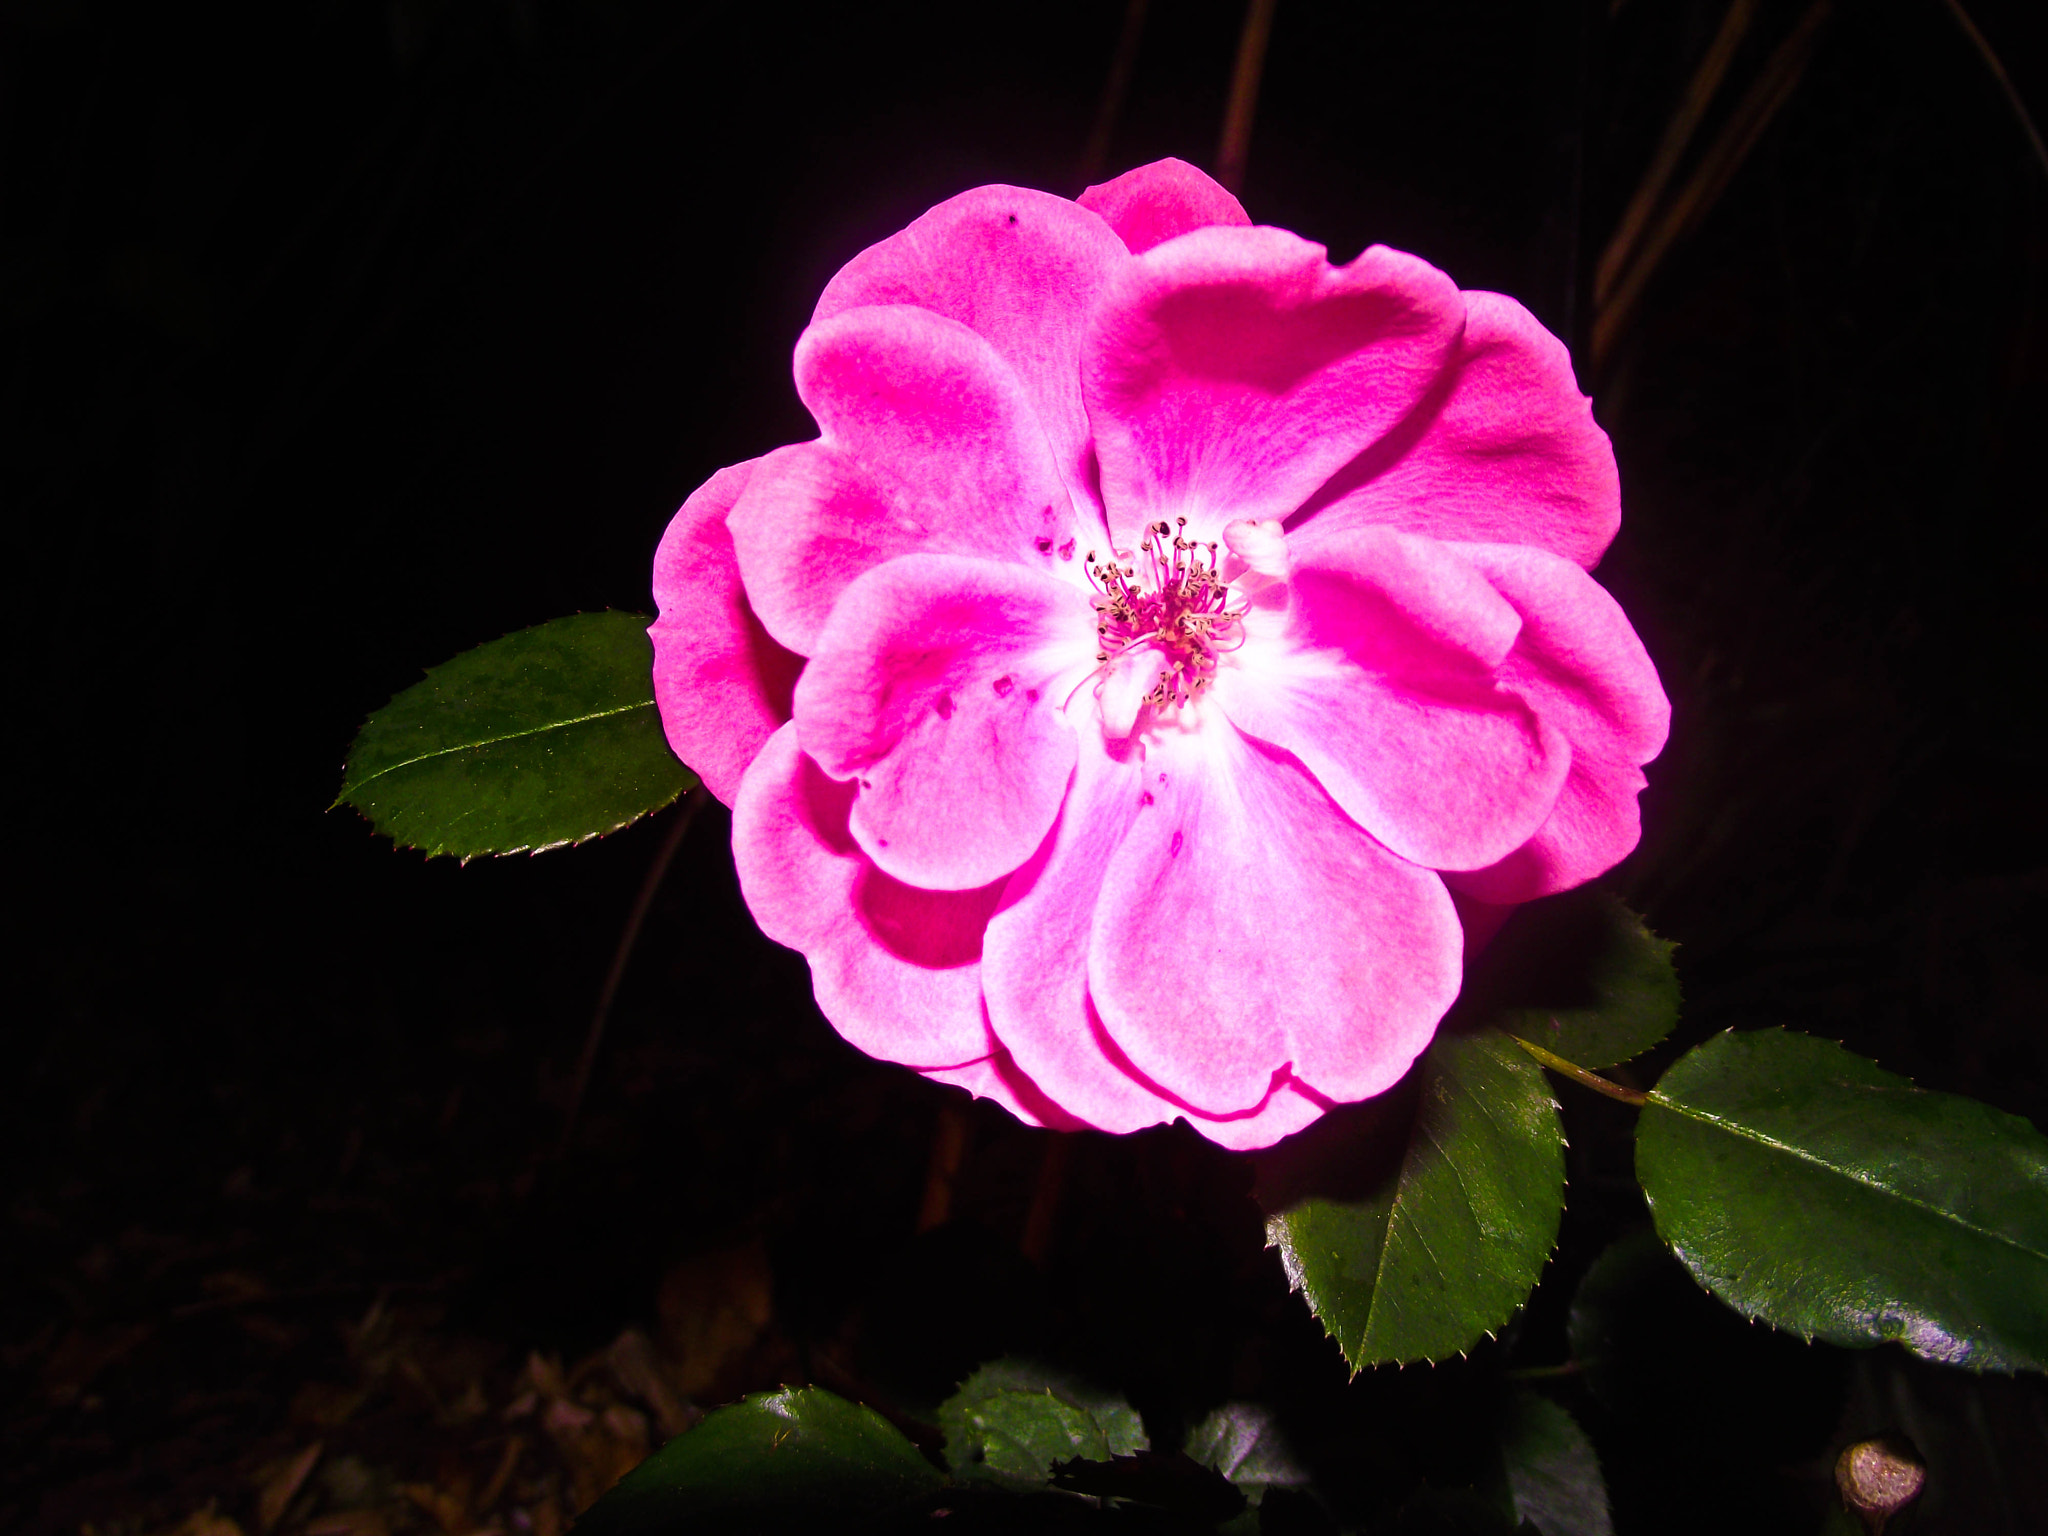 Photograph Flower in the Dark by Phil Purcell on 500px